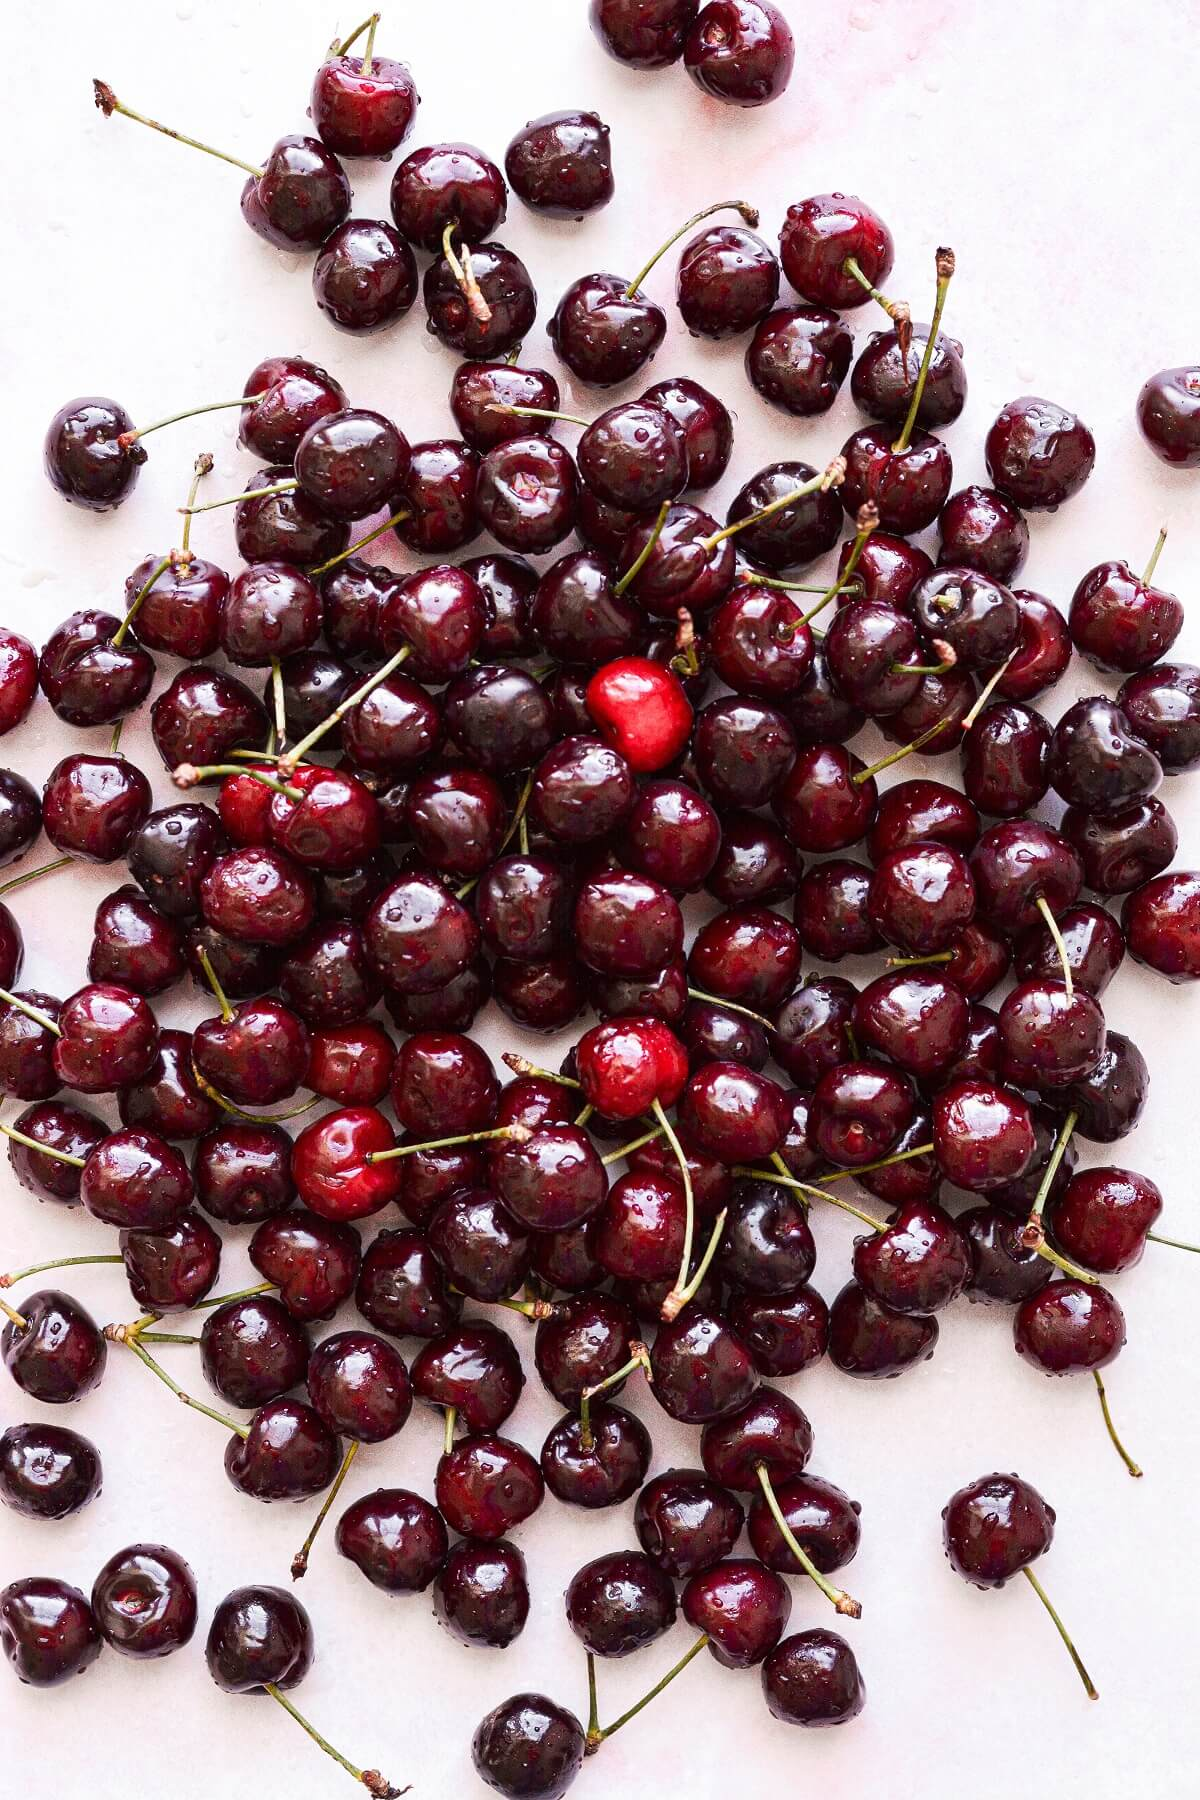 Fresh cherries covered in water droplets.